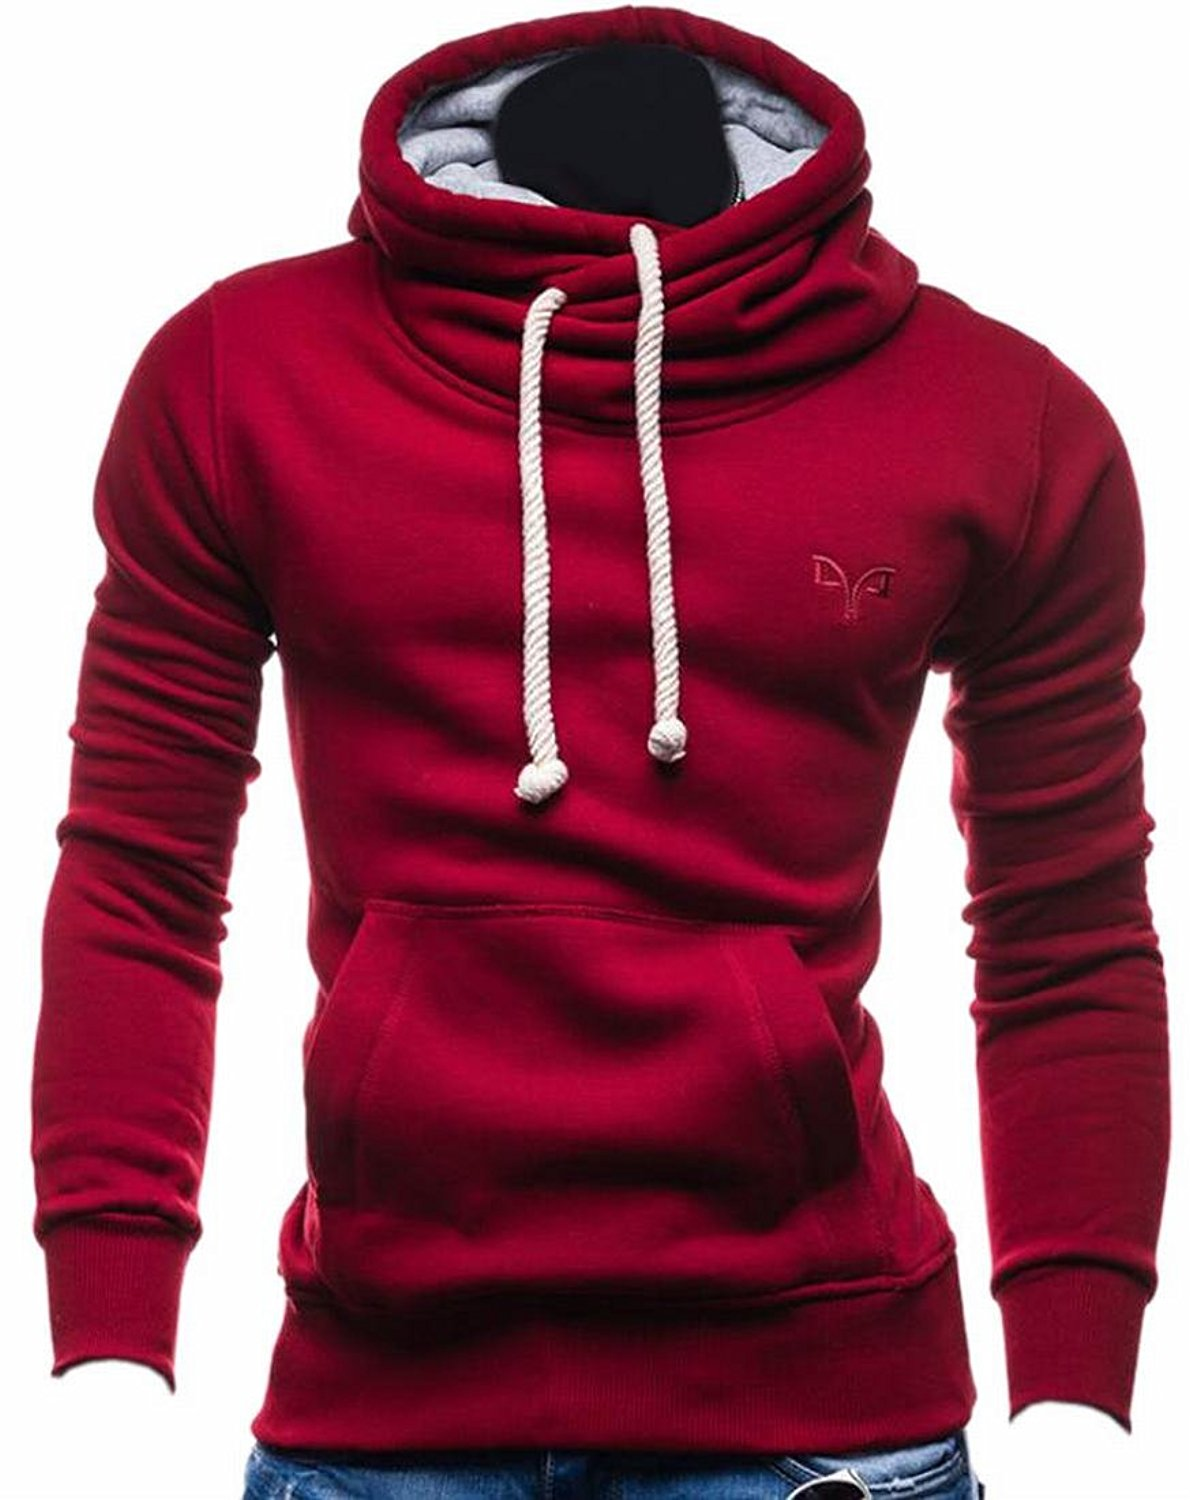 Jmwss QD Womens Casual Relaxed Fit Solid Long Sleeve Hoodies Pullover Sweatshirts